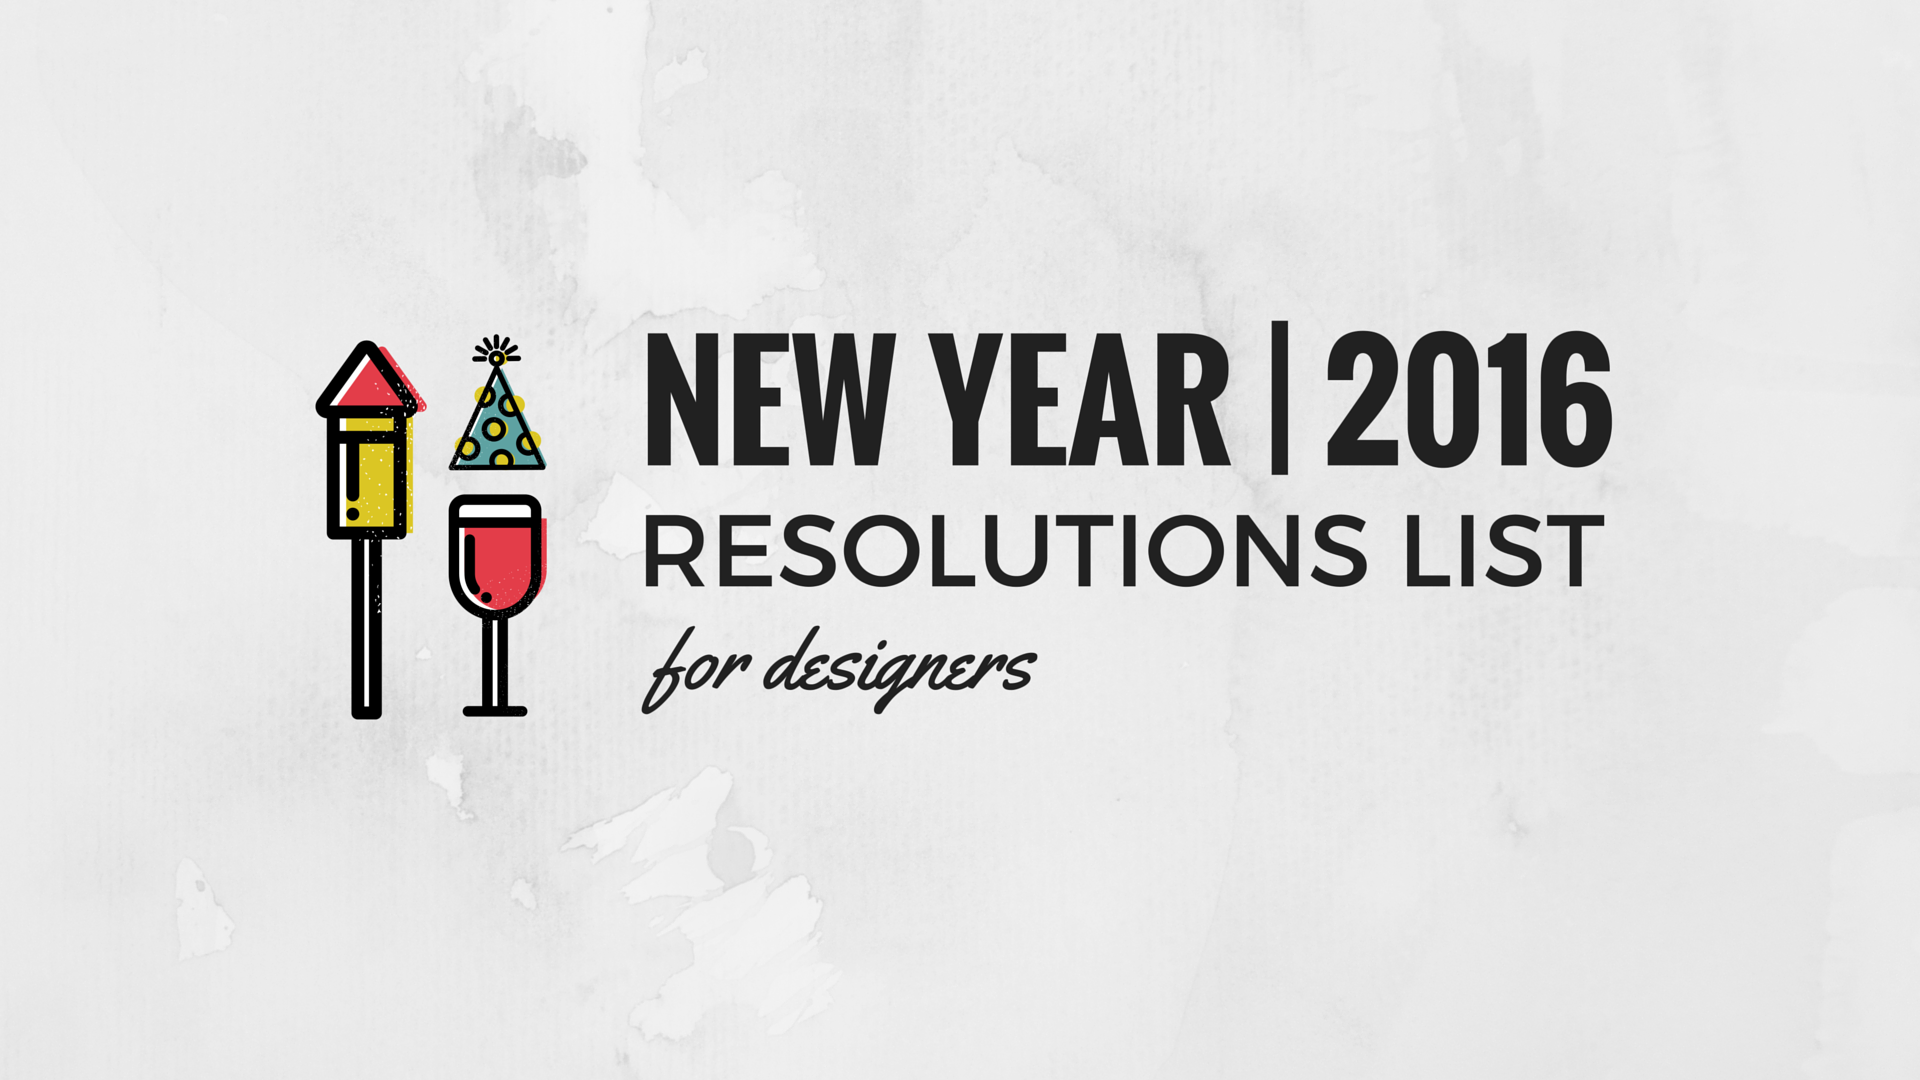 New Year Resolutions List